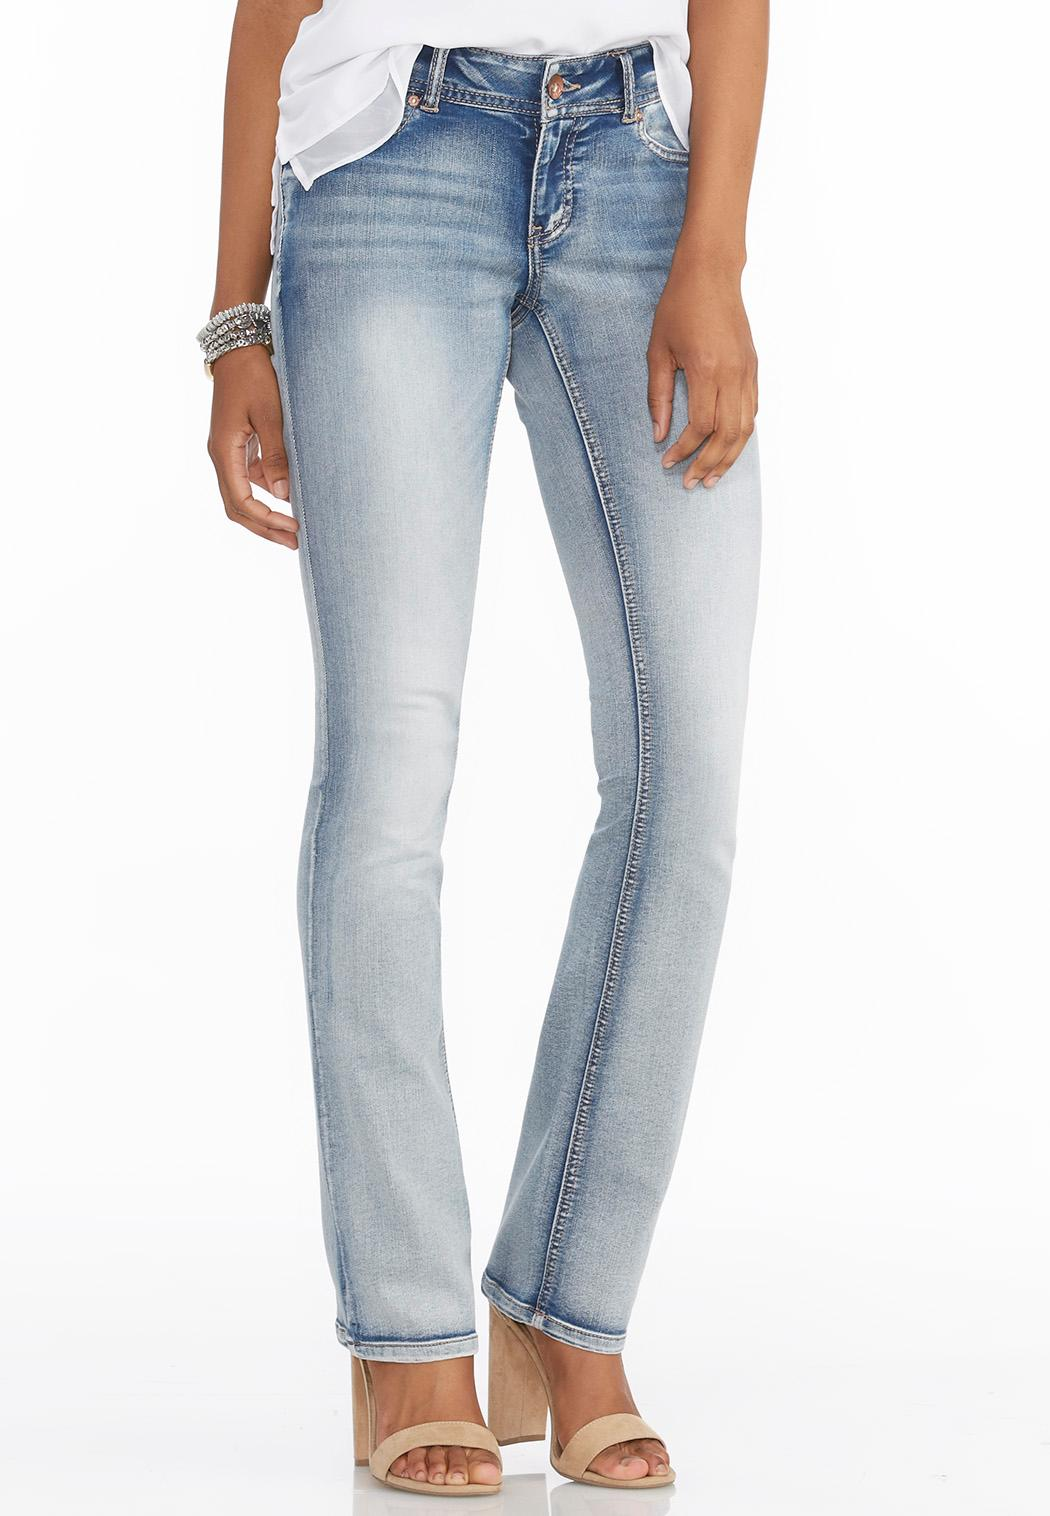 Light Wash Bootcut Jeans Denim | Cato Fashions